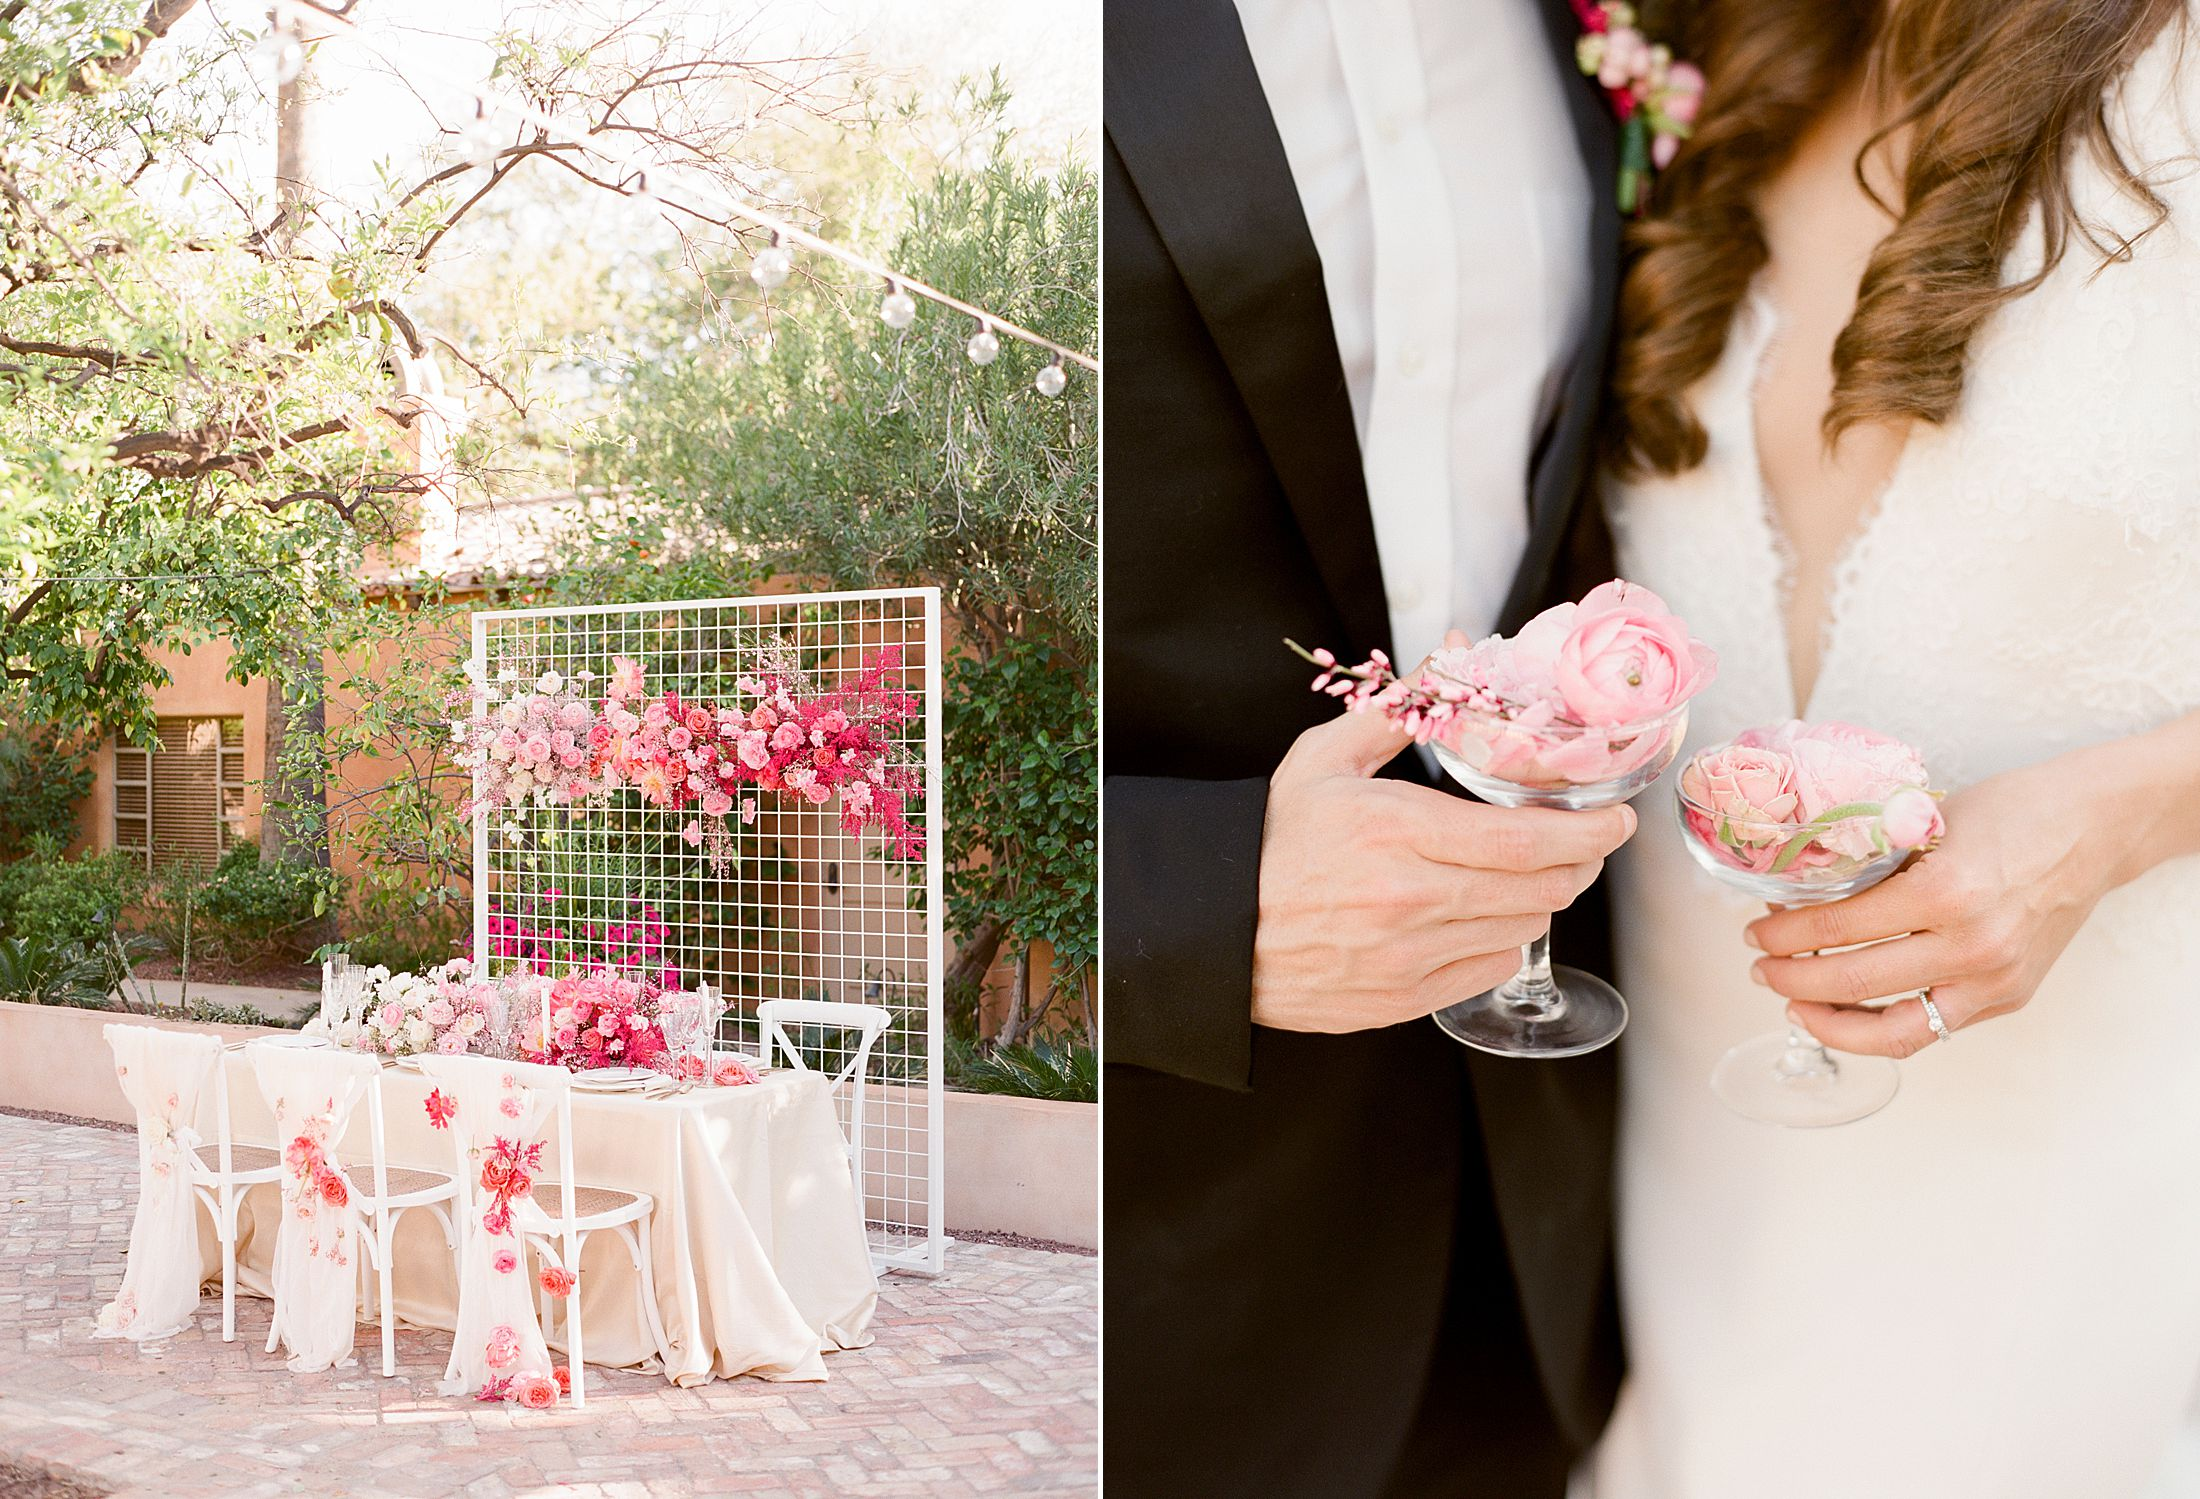 Pink Ombre Wedding Inspiration on Style Me Pretty - Royal Palms Wedding - Scottsdale Wedding - Ashley Baumgartner - Bloom and Blueprint - Wedding Puppies - Bulldog Puppies_0040.jpg